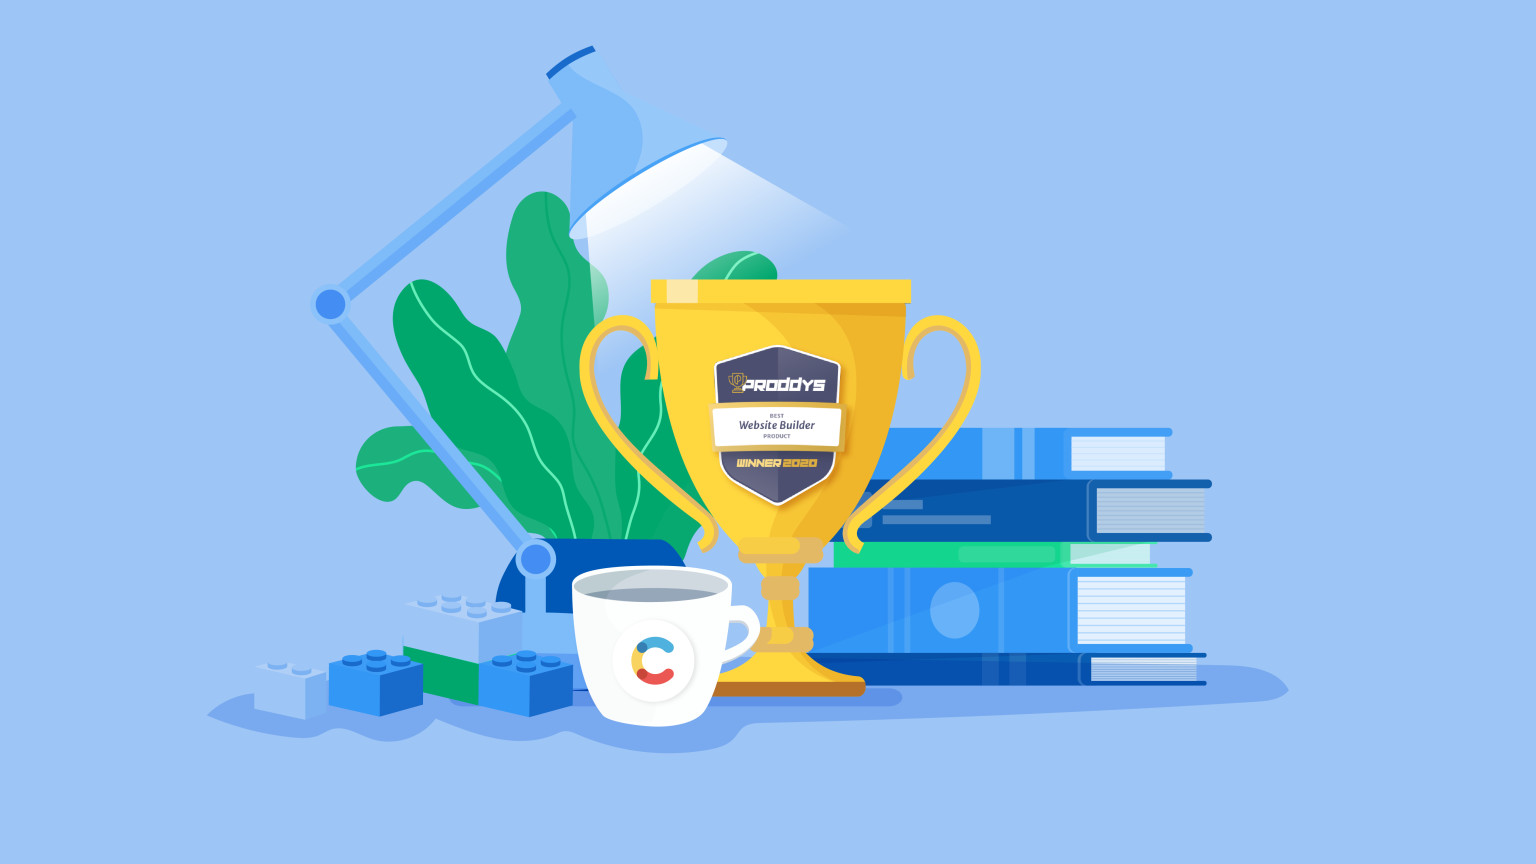 An illustration of a trophy with Proddy written on it sitting among a stack of books, a Contentful branded mug, a plant and a desk lamp.